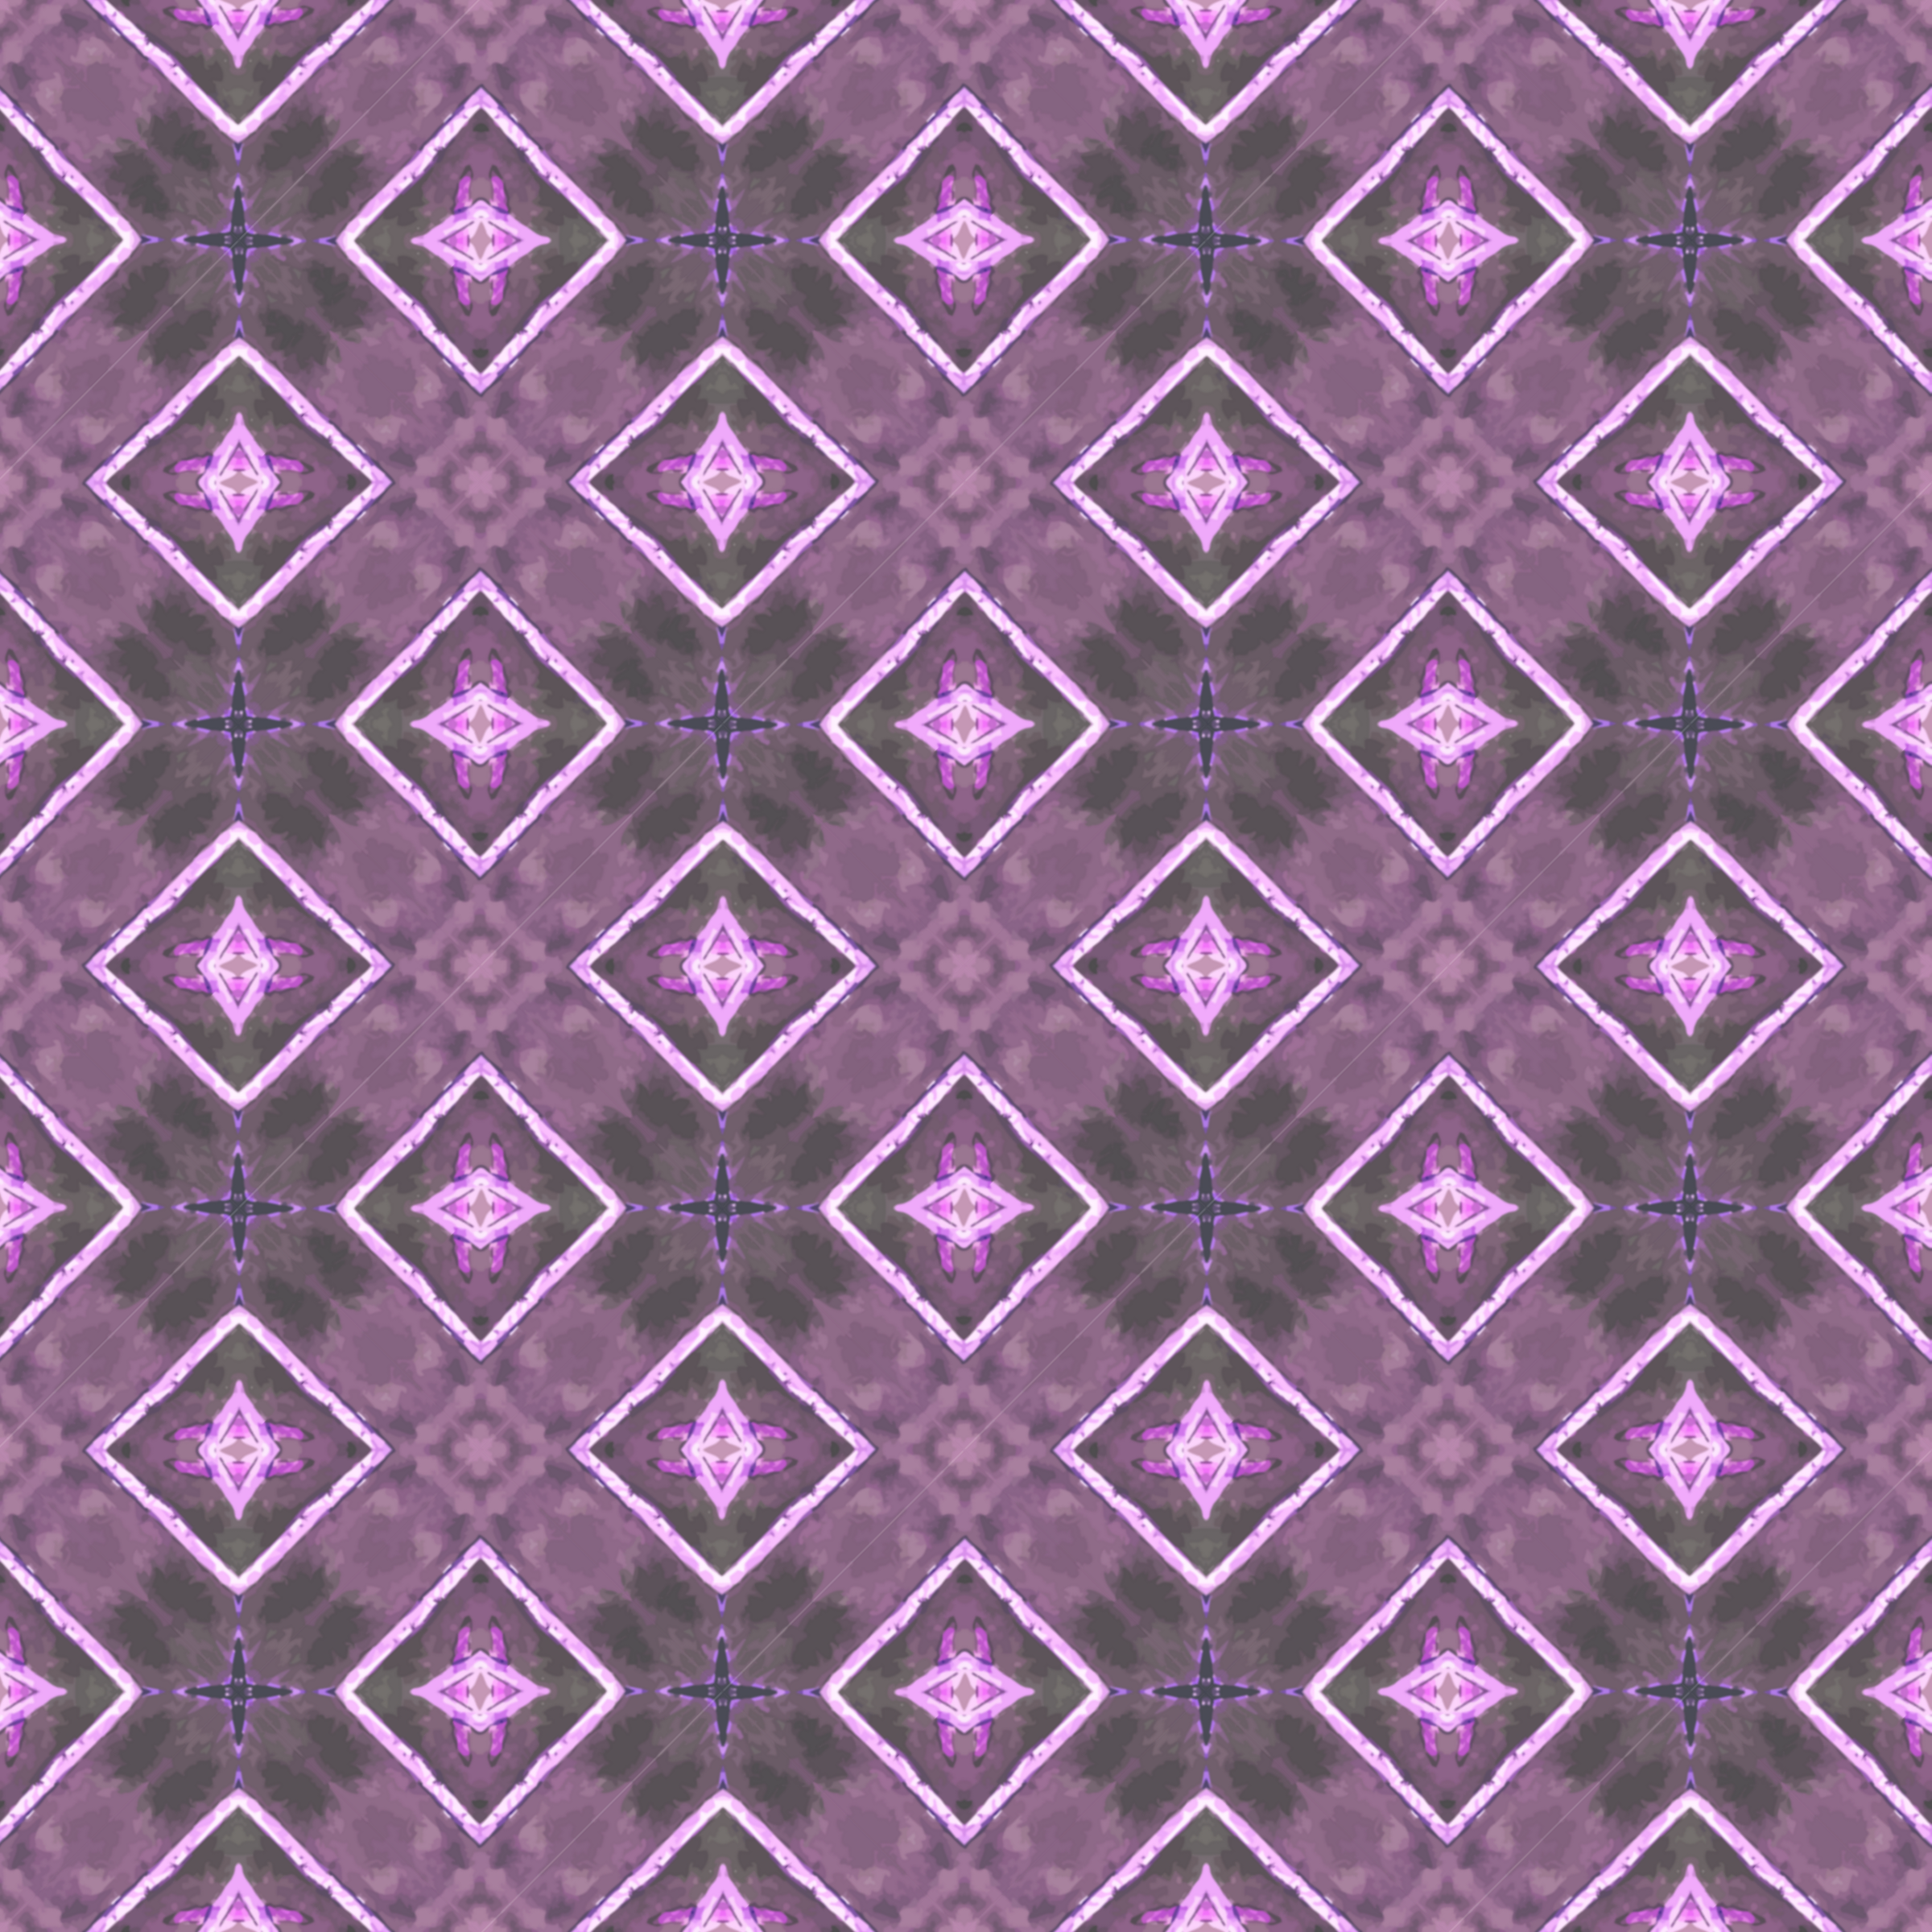 Background pattern 184 (colour 3) by Firkin